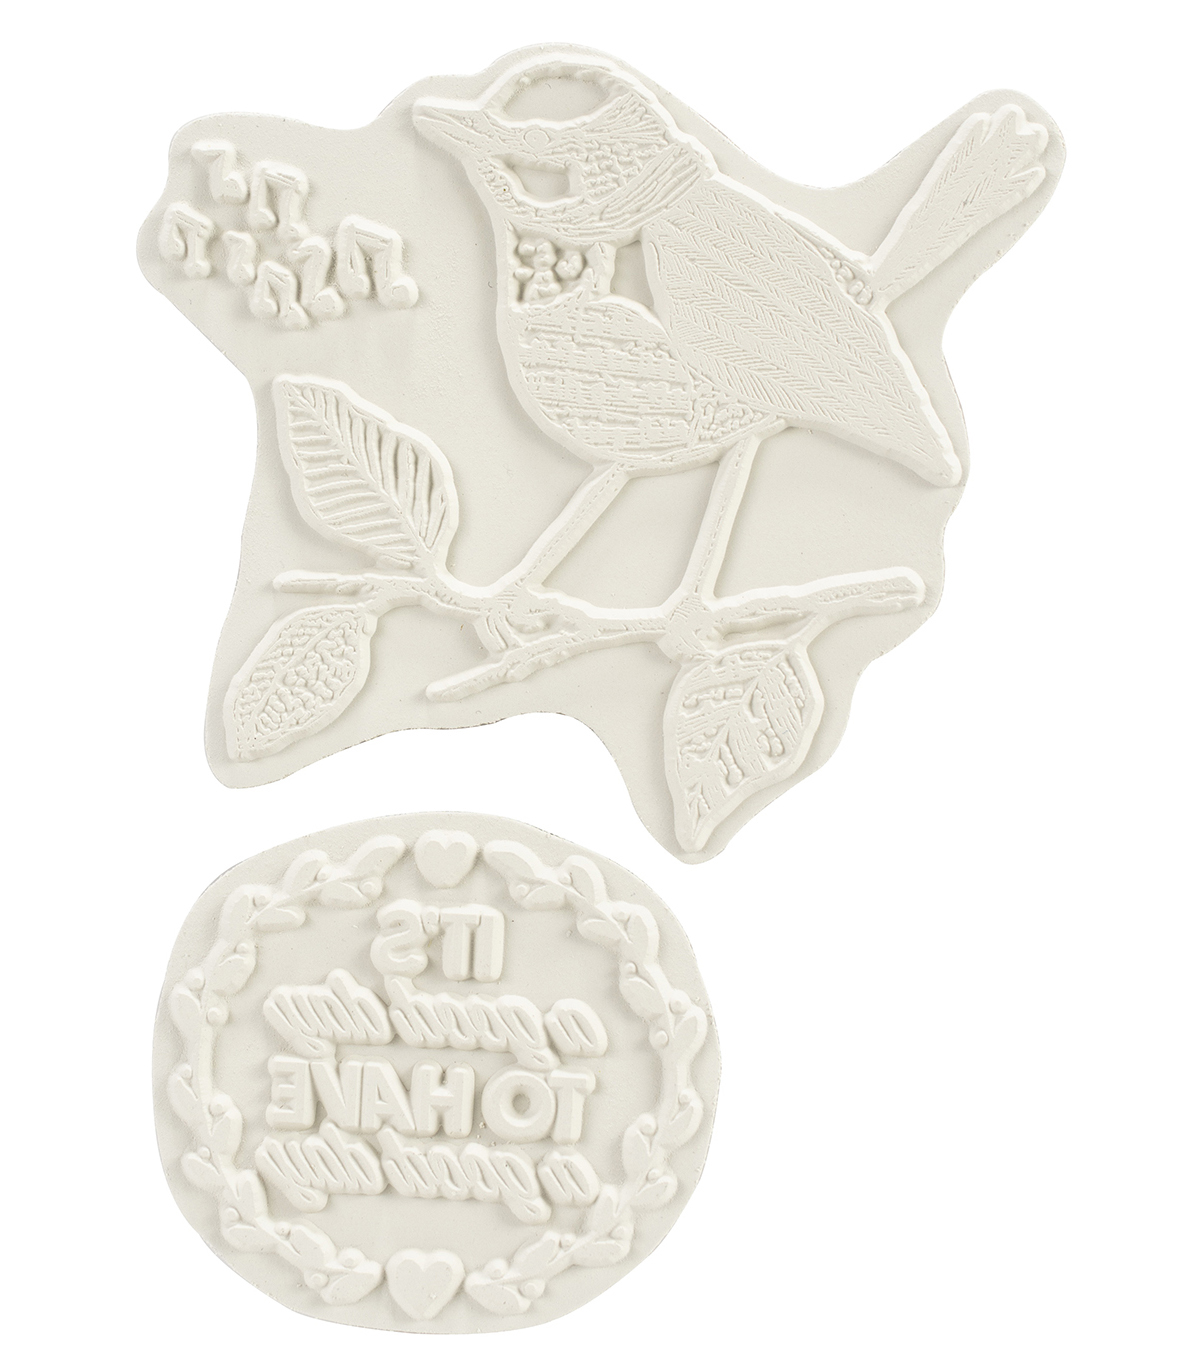 Carabelle Studio Cling Stamp A6 By Sultane-It\u0027s A Good Day